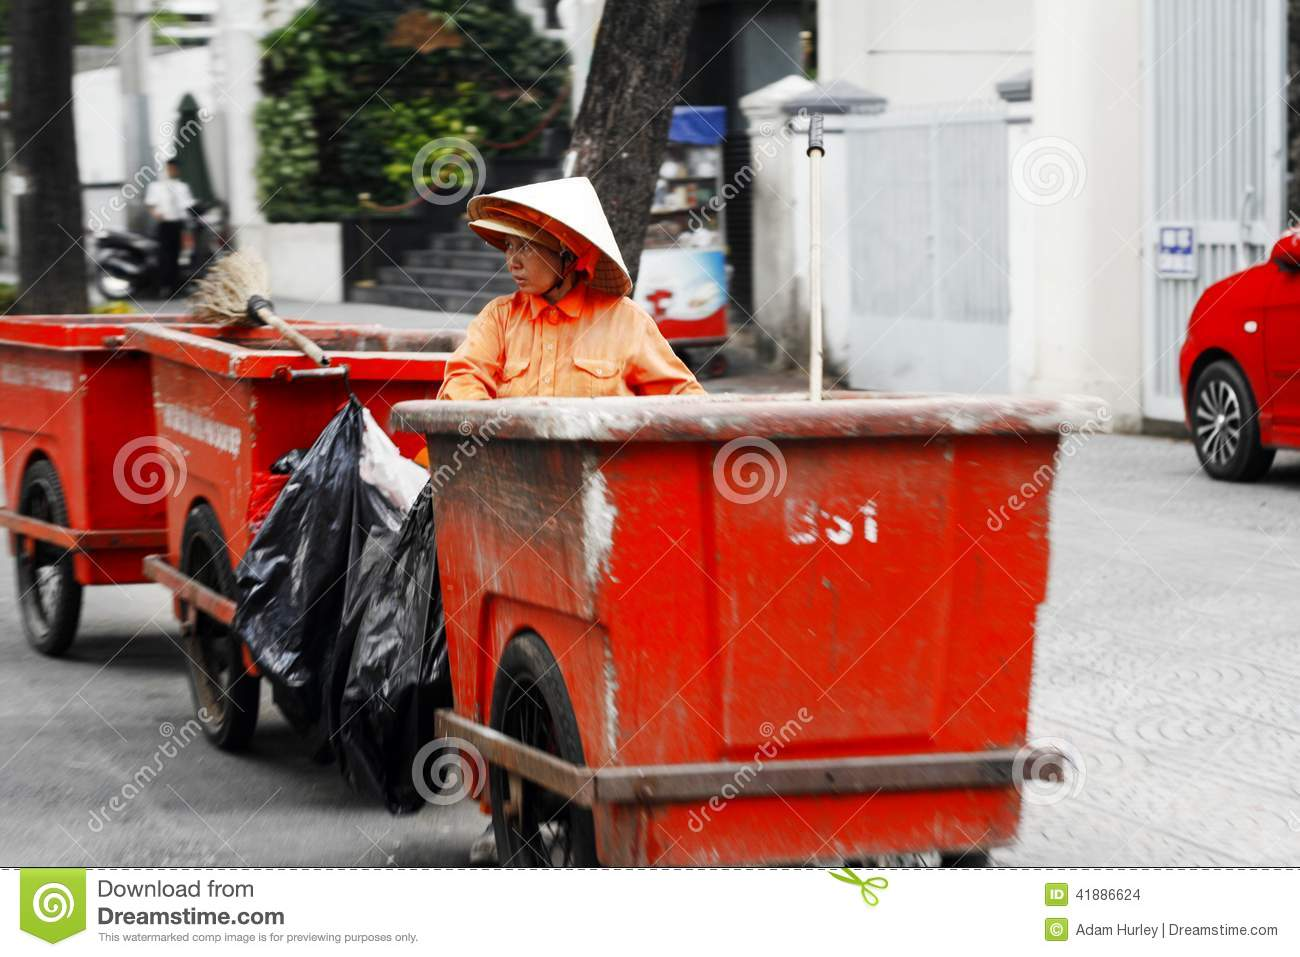 The True Heroes of Ho Chi Minh City